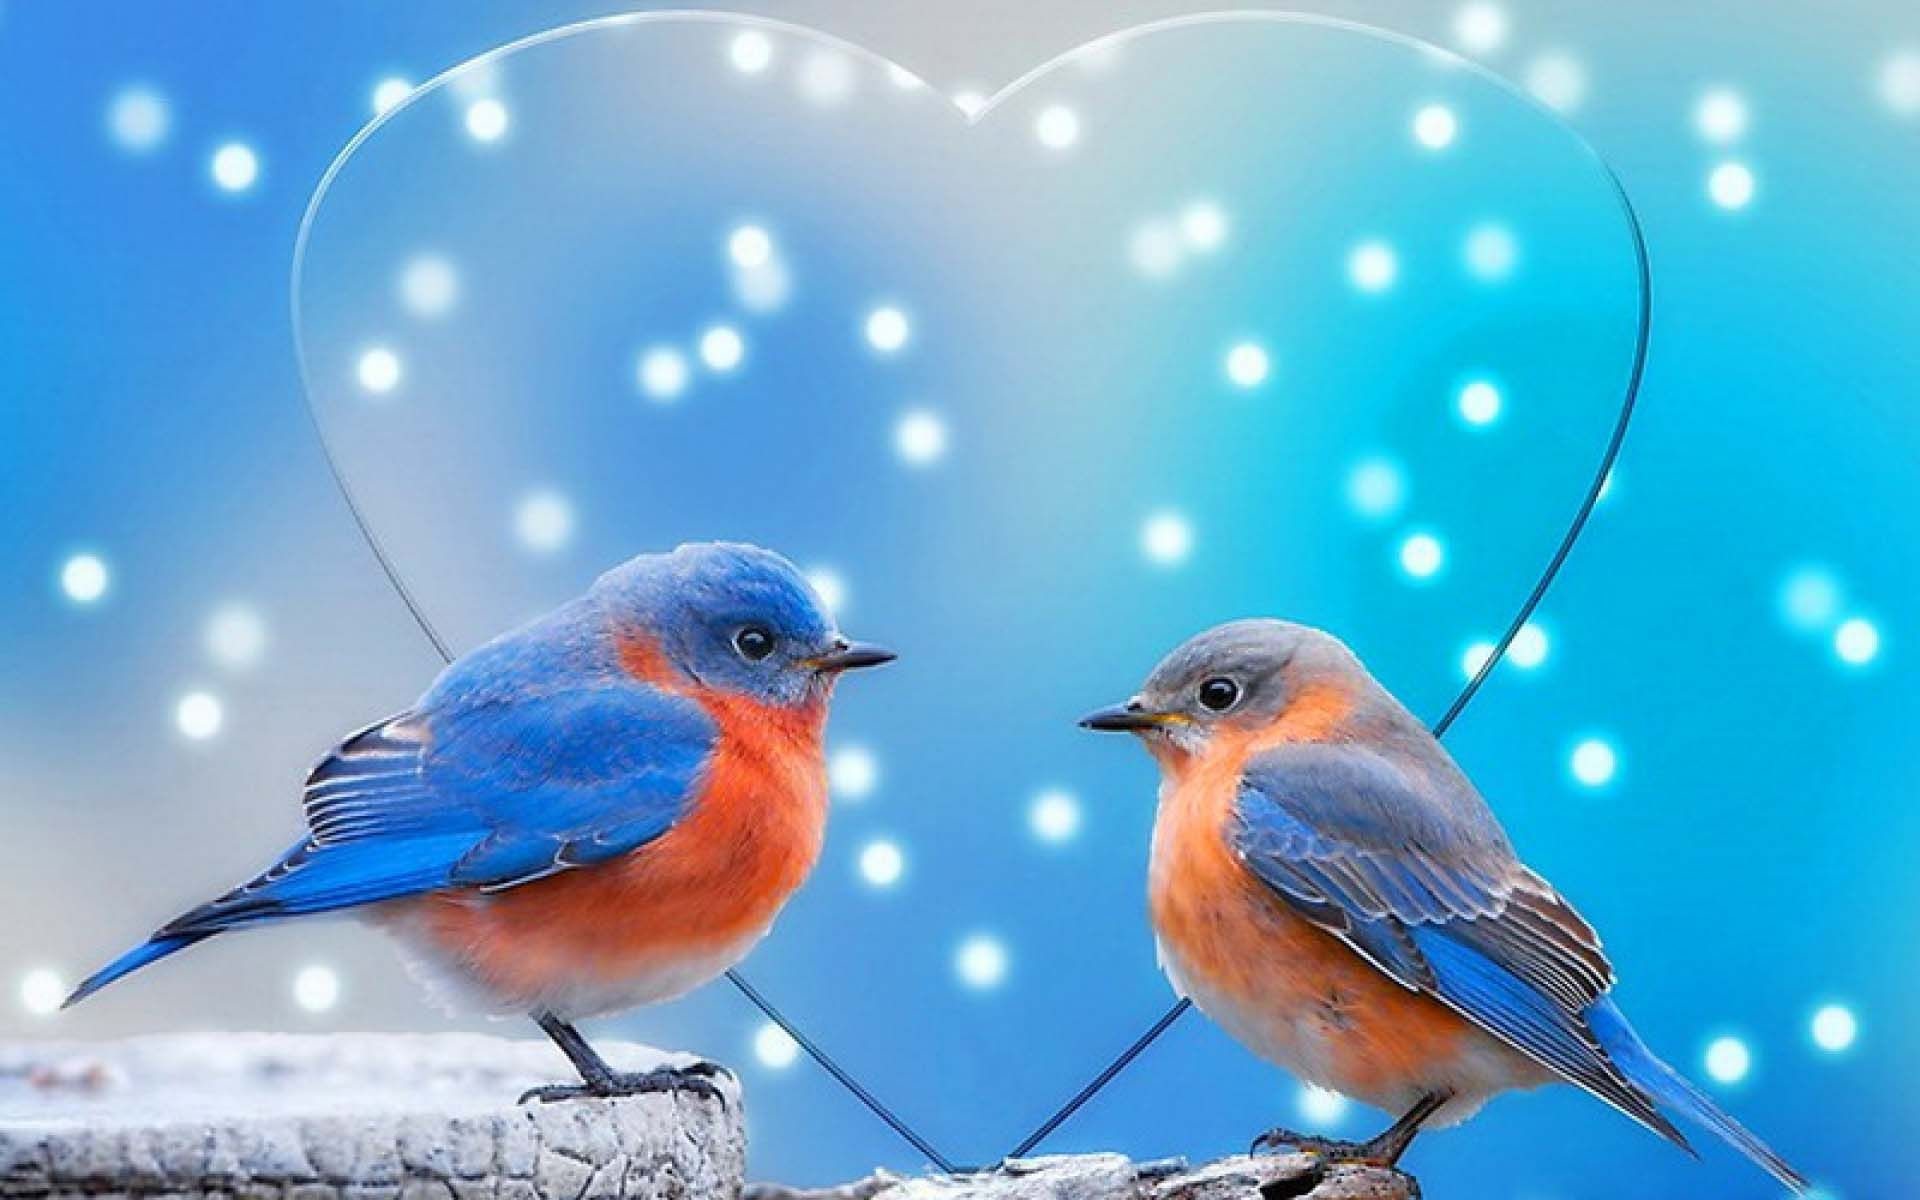 colorful love birds wallpaper hd animals and birds